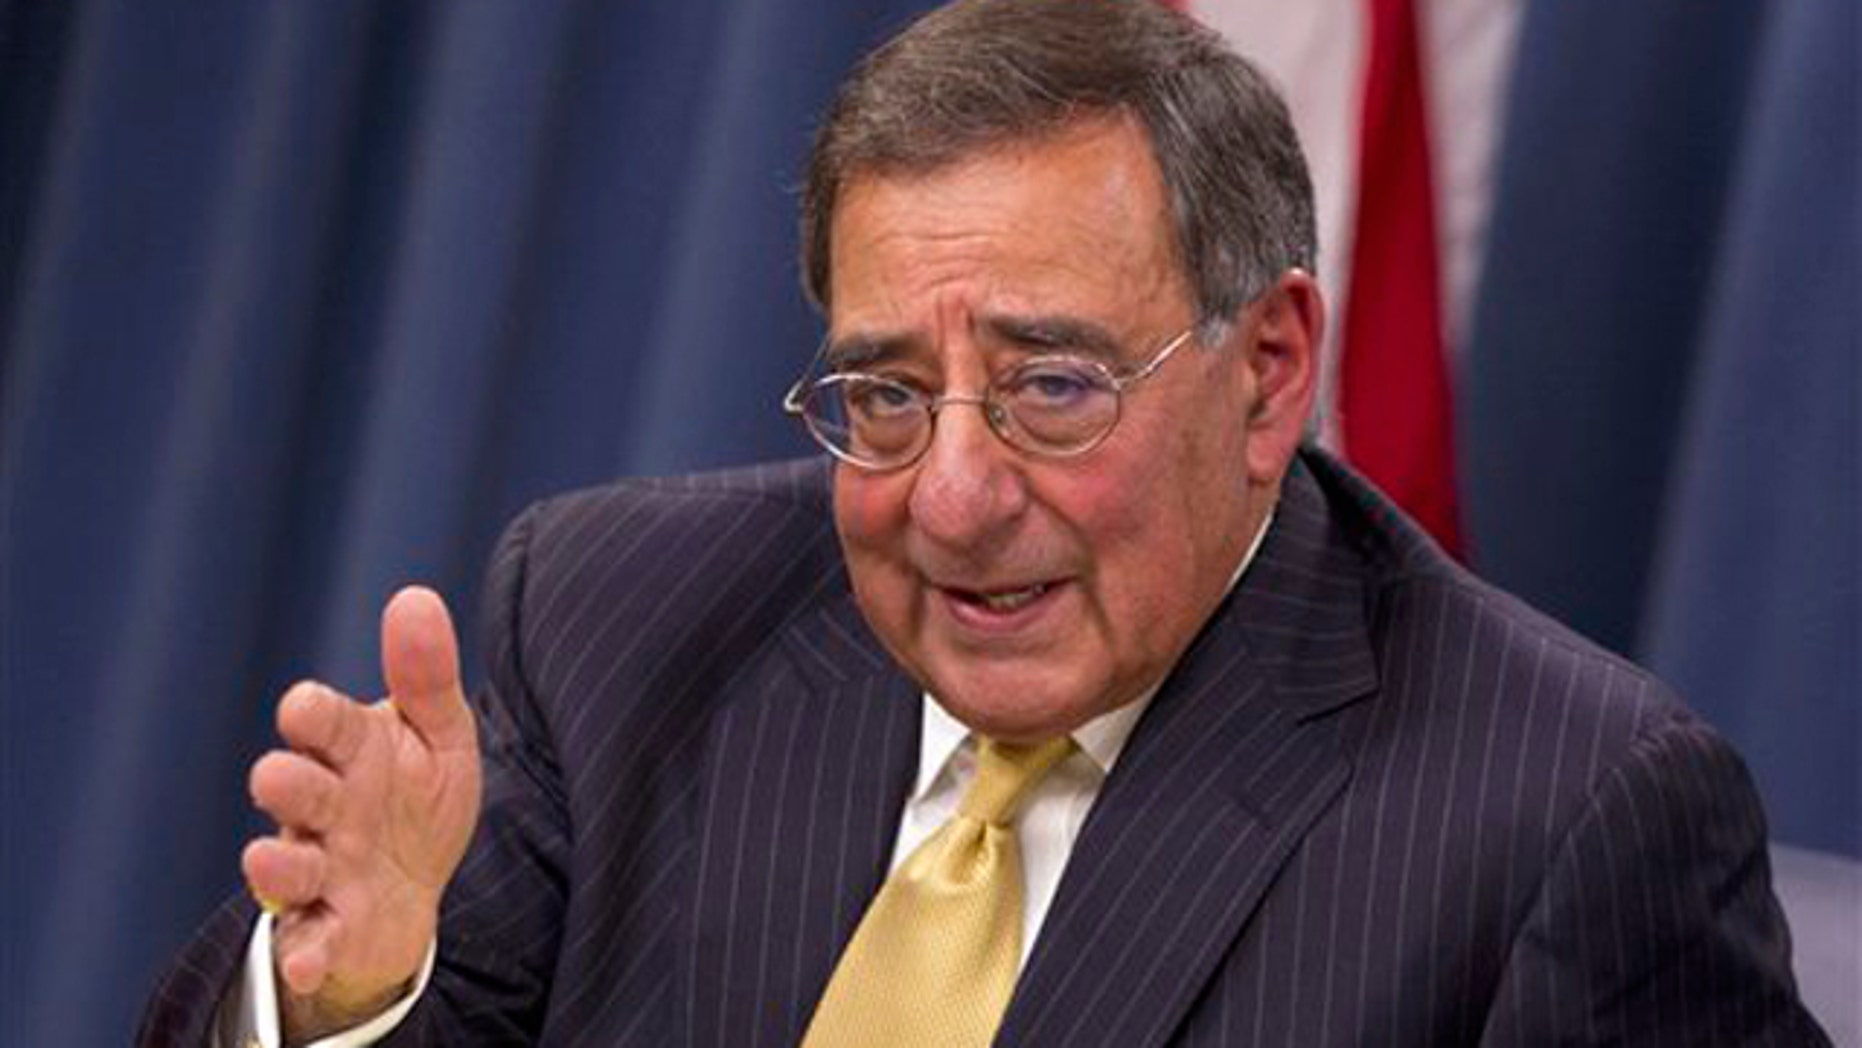 Nov. 10, 2011: Defense Secretary Leon Panetta gestures during a news conference at the Pentagon.